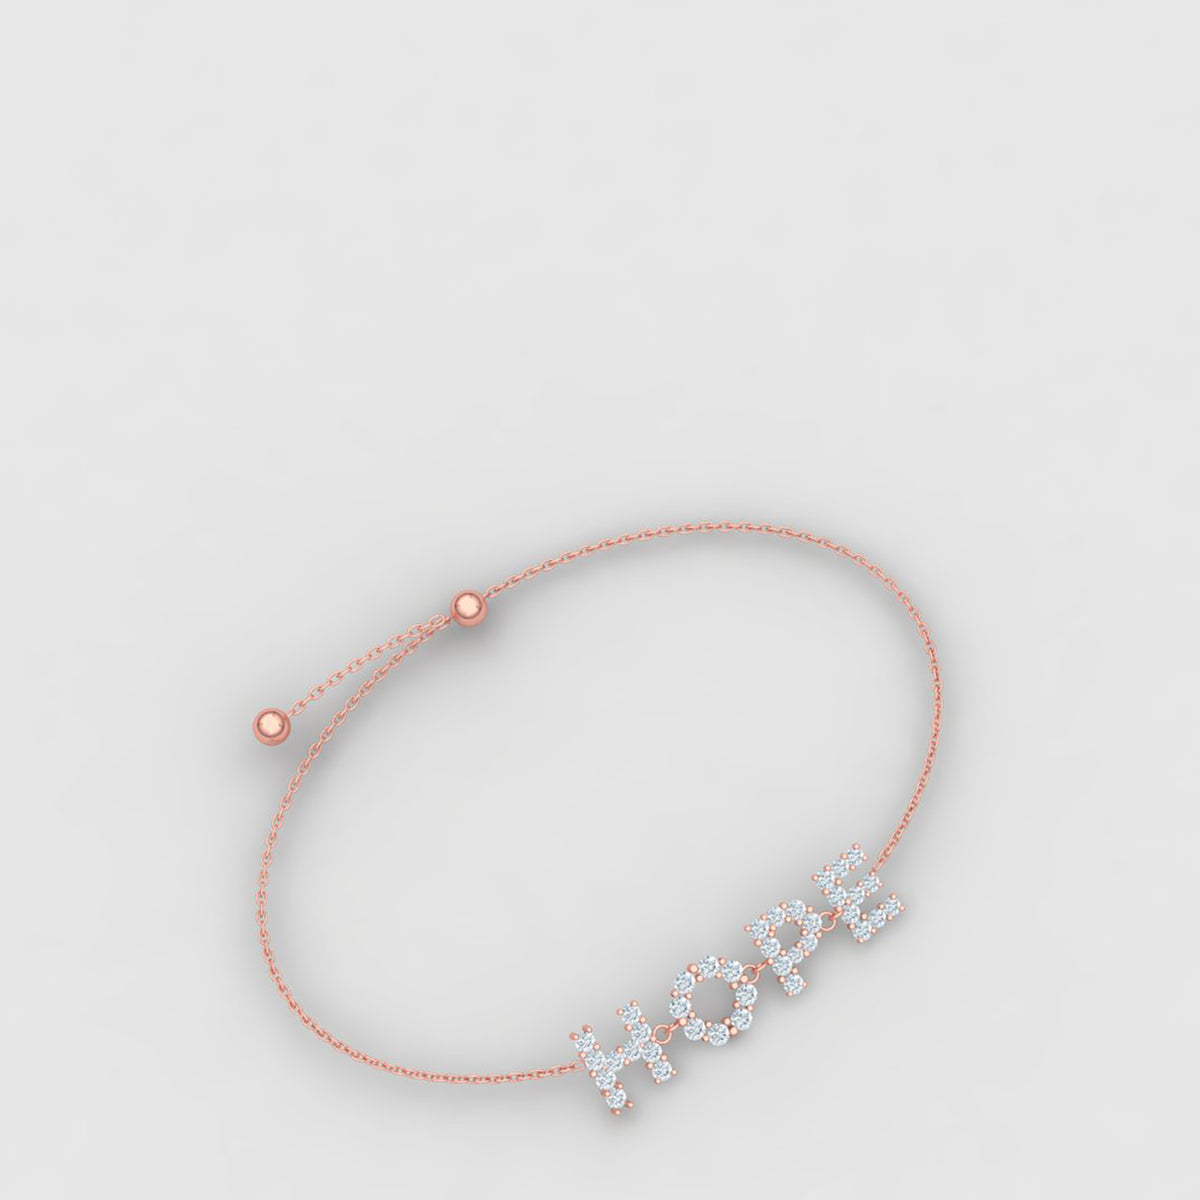 18k Rose Gold Hope Bracelet With Diamonds